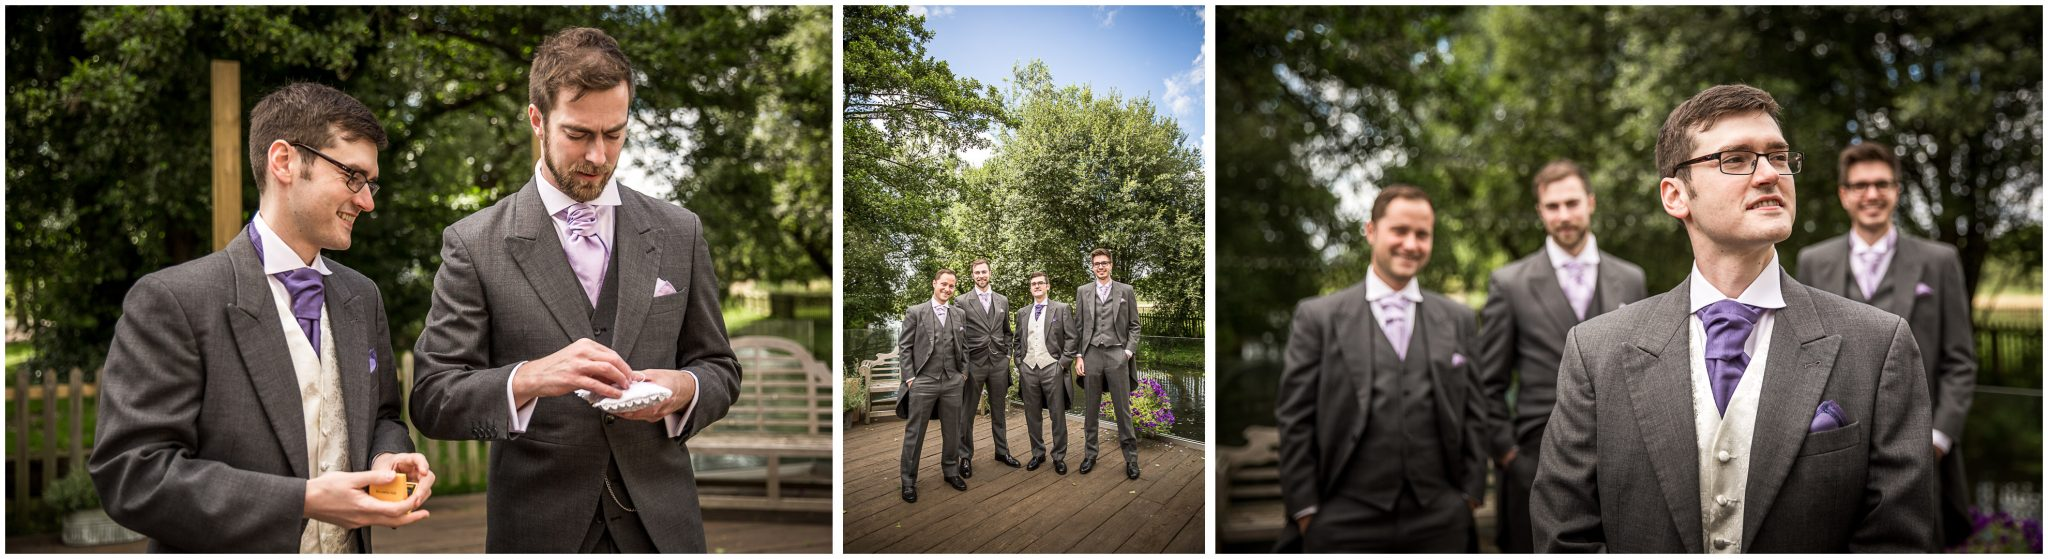 Sopley Mill wedding photography groom with groomsmen on decking